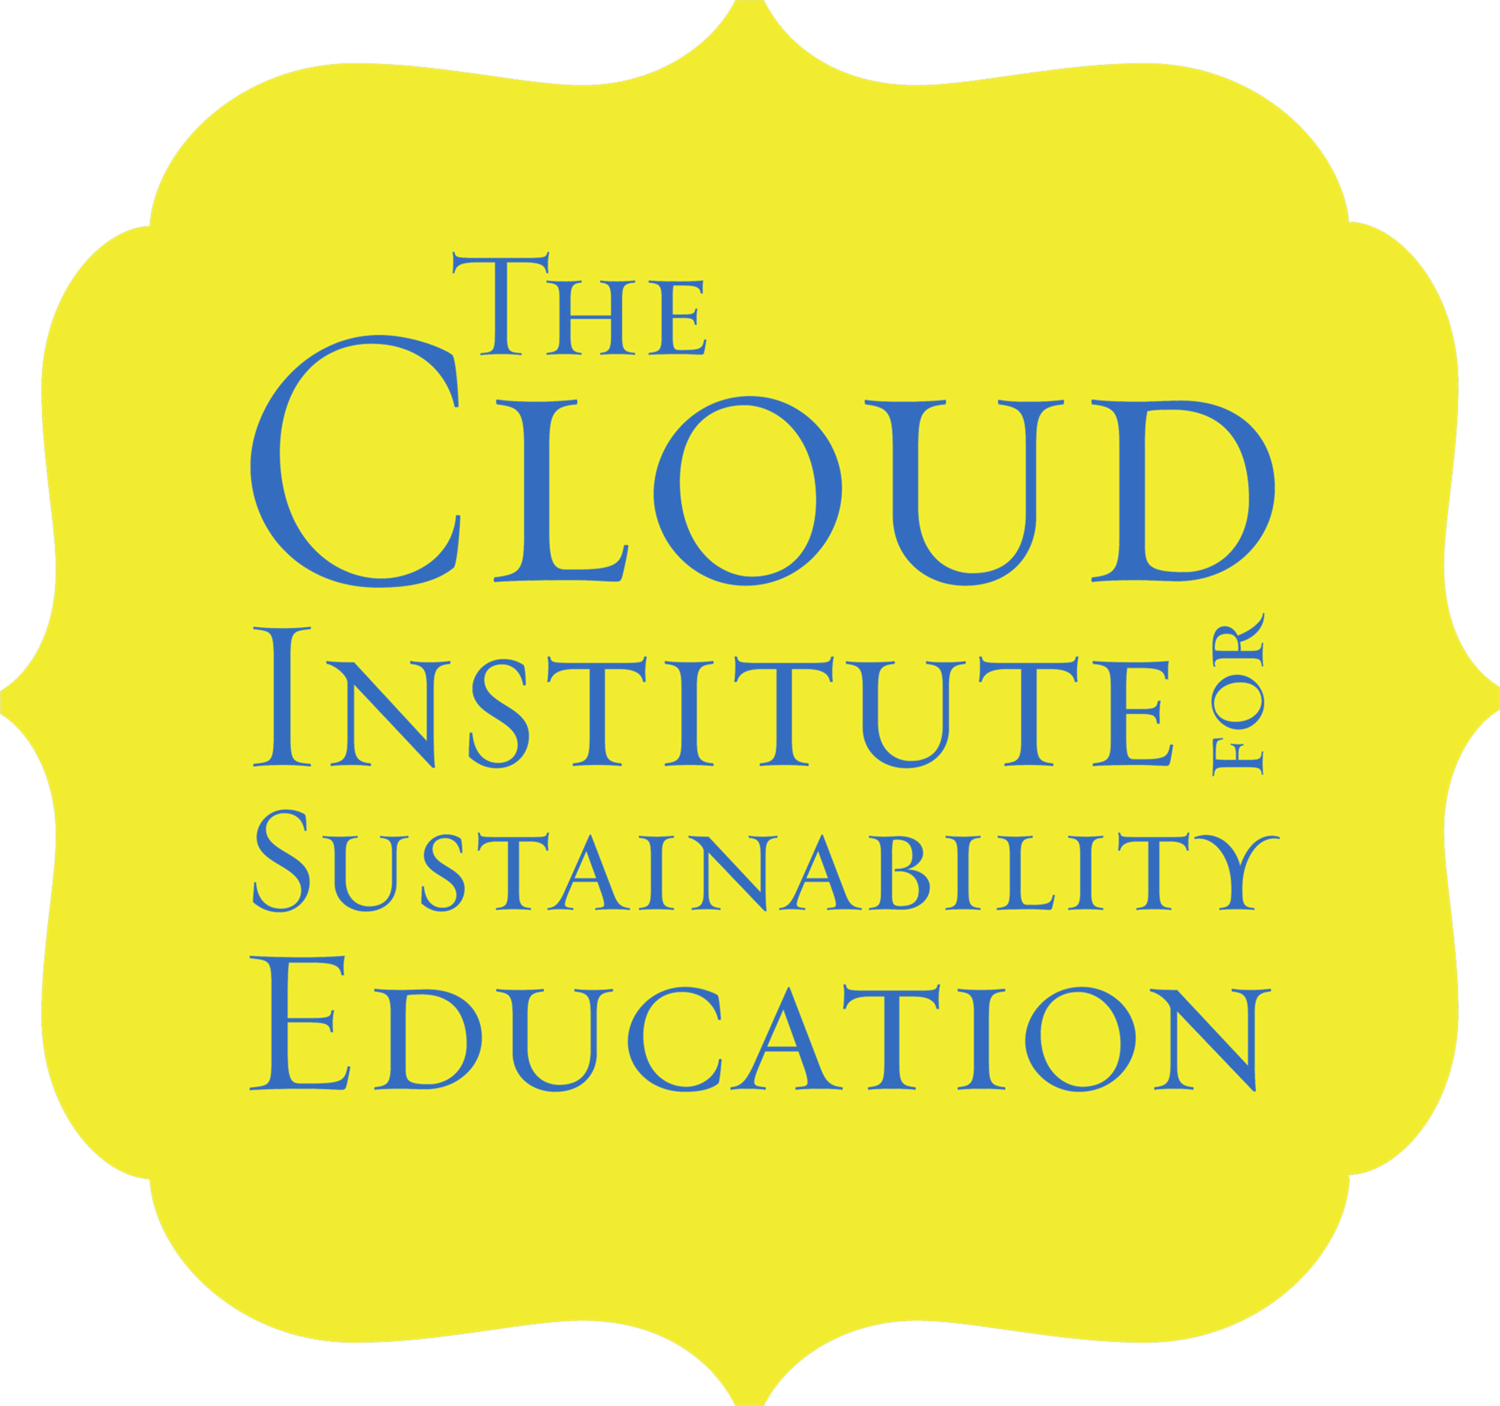 The Cloud Institute for Sustainability Education